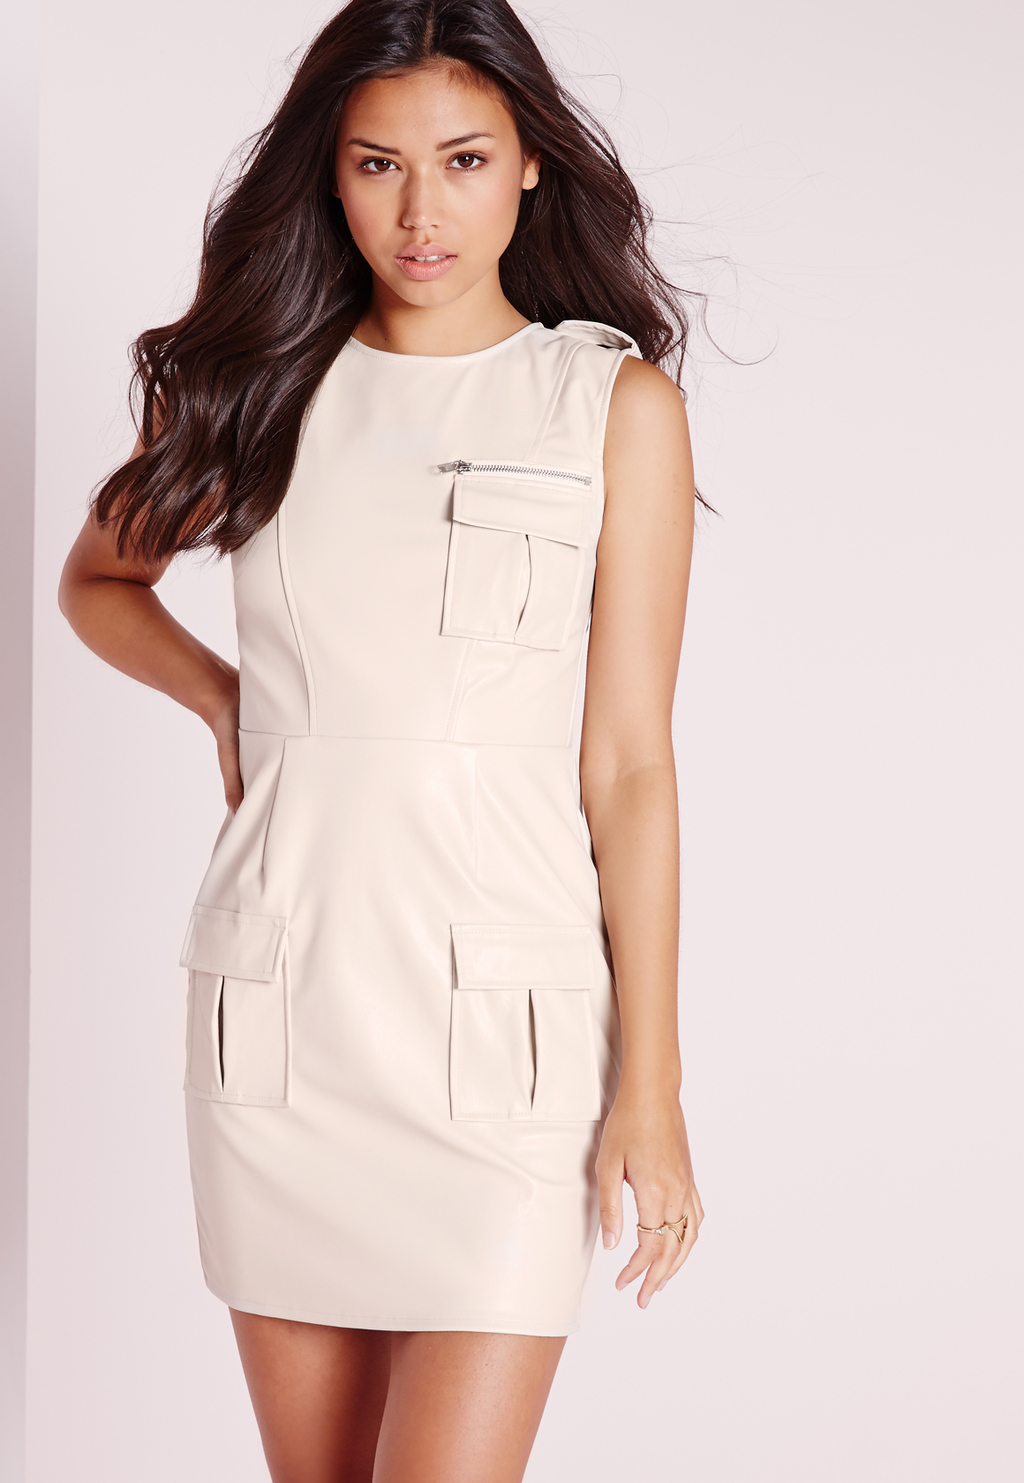 Sleeveless Faux Leather Pocket Front Bodycon Dress Ivory, Ivory - style: shift; length: mini; pattern: plain; sleeve style: sleeveless; predominant colour: ivory/cream; occasions: evening; fit: body skimming; fibres: polyester/polyamide - 100%; neckline: crew; sleeve length: sleeveless; texture group: leather; pattern type: fabric; season: s/s 2016; wardrobe: event